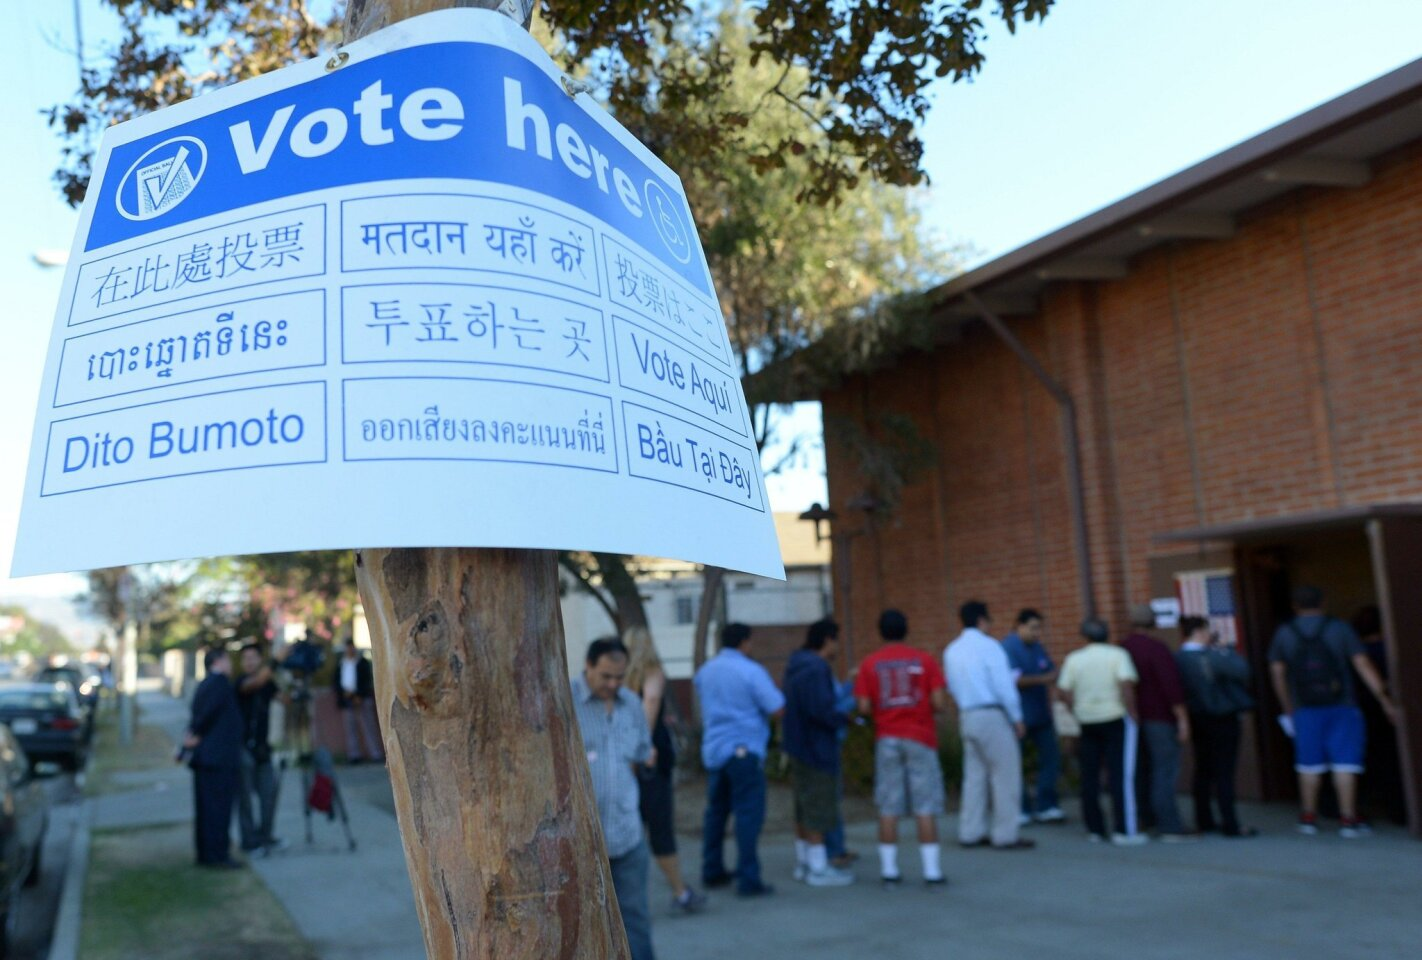 In this file photo, Sun Valley residents wait in line to vote at the polling station located at Our Lady of The Holy Church on election day at the Sun Valley's Latino district, Los Angeles County, on November 6, 2012 in California.